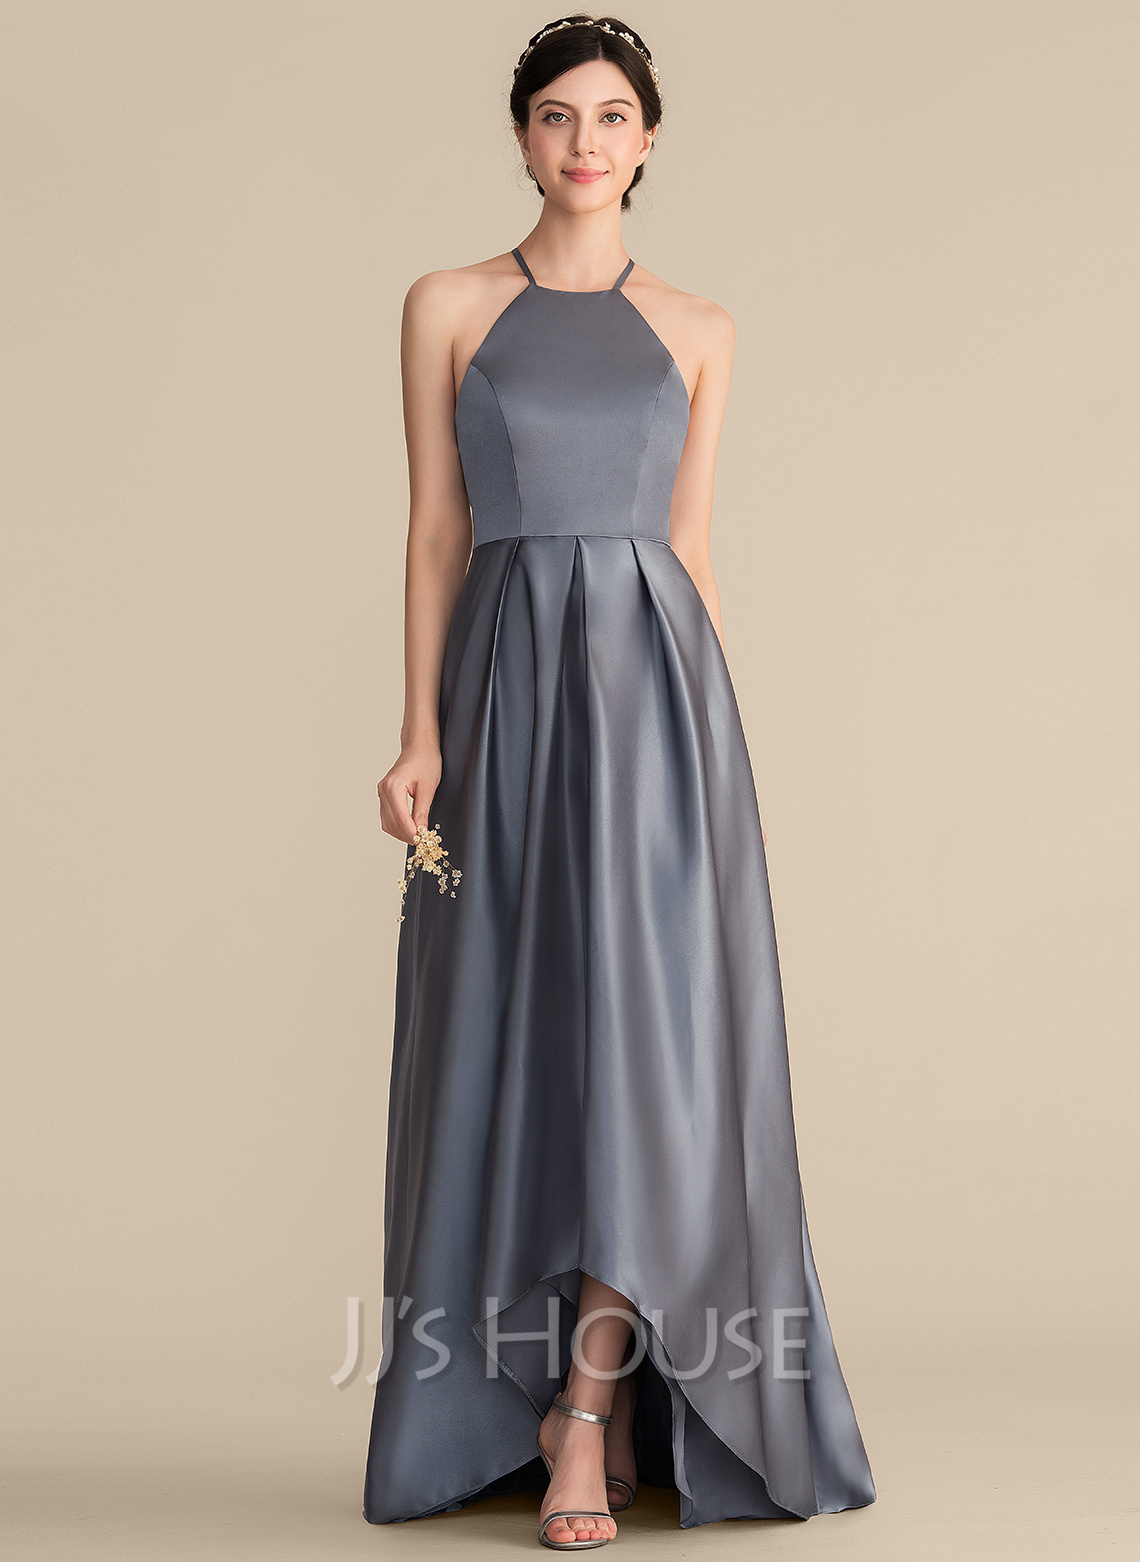 A-Line Square Neckline Asymmetrical Satin Bridesmaid Dress With Ruffle Bow(s)